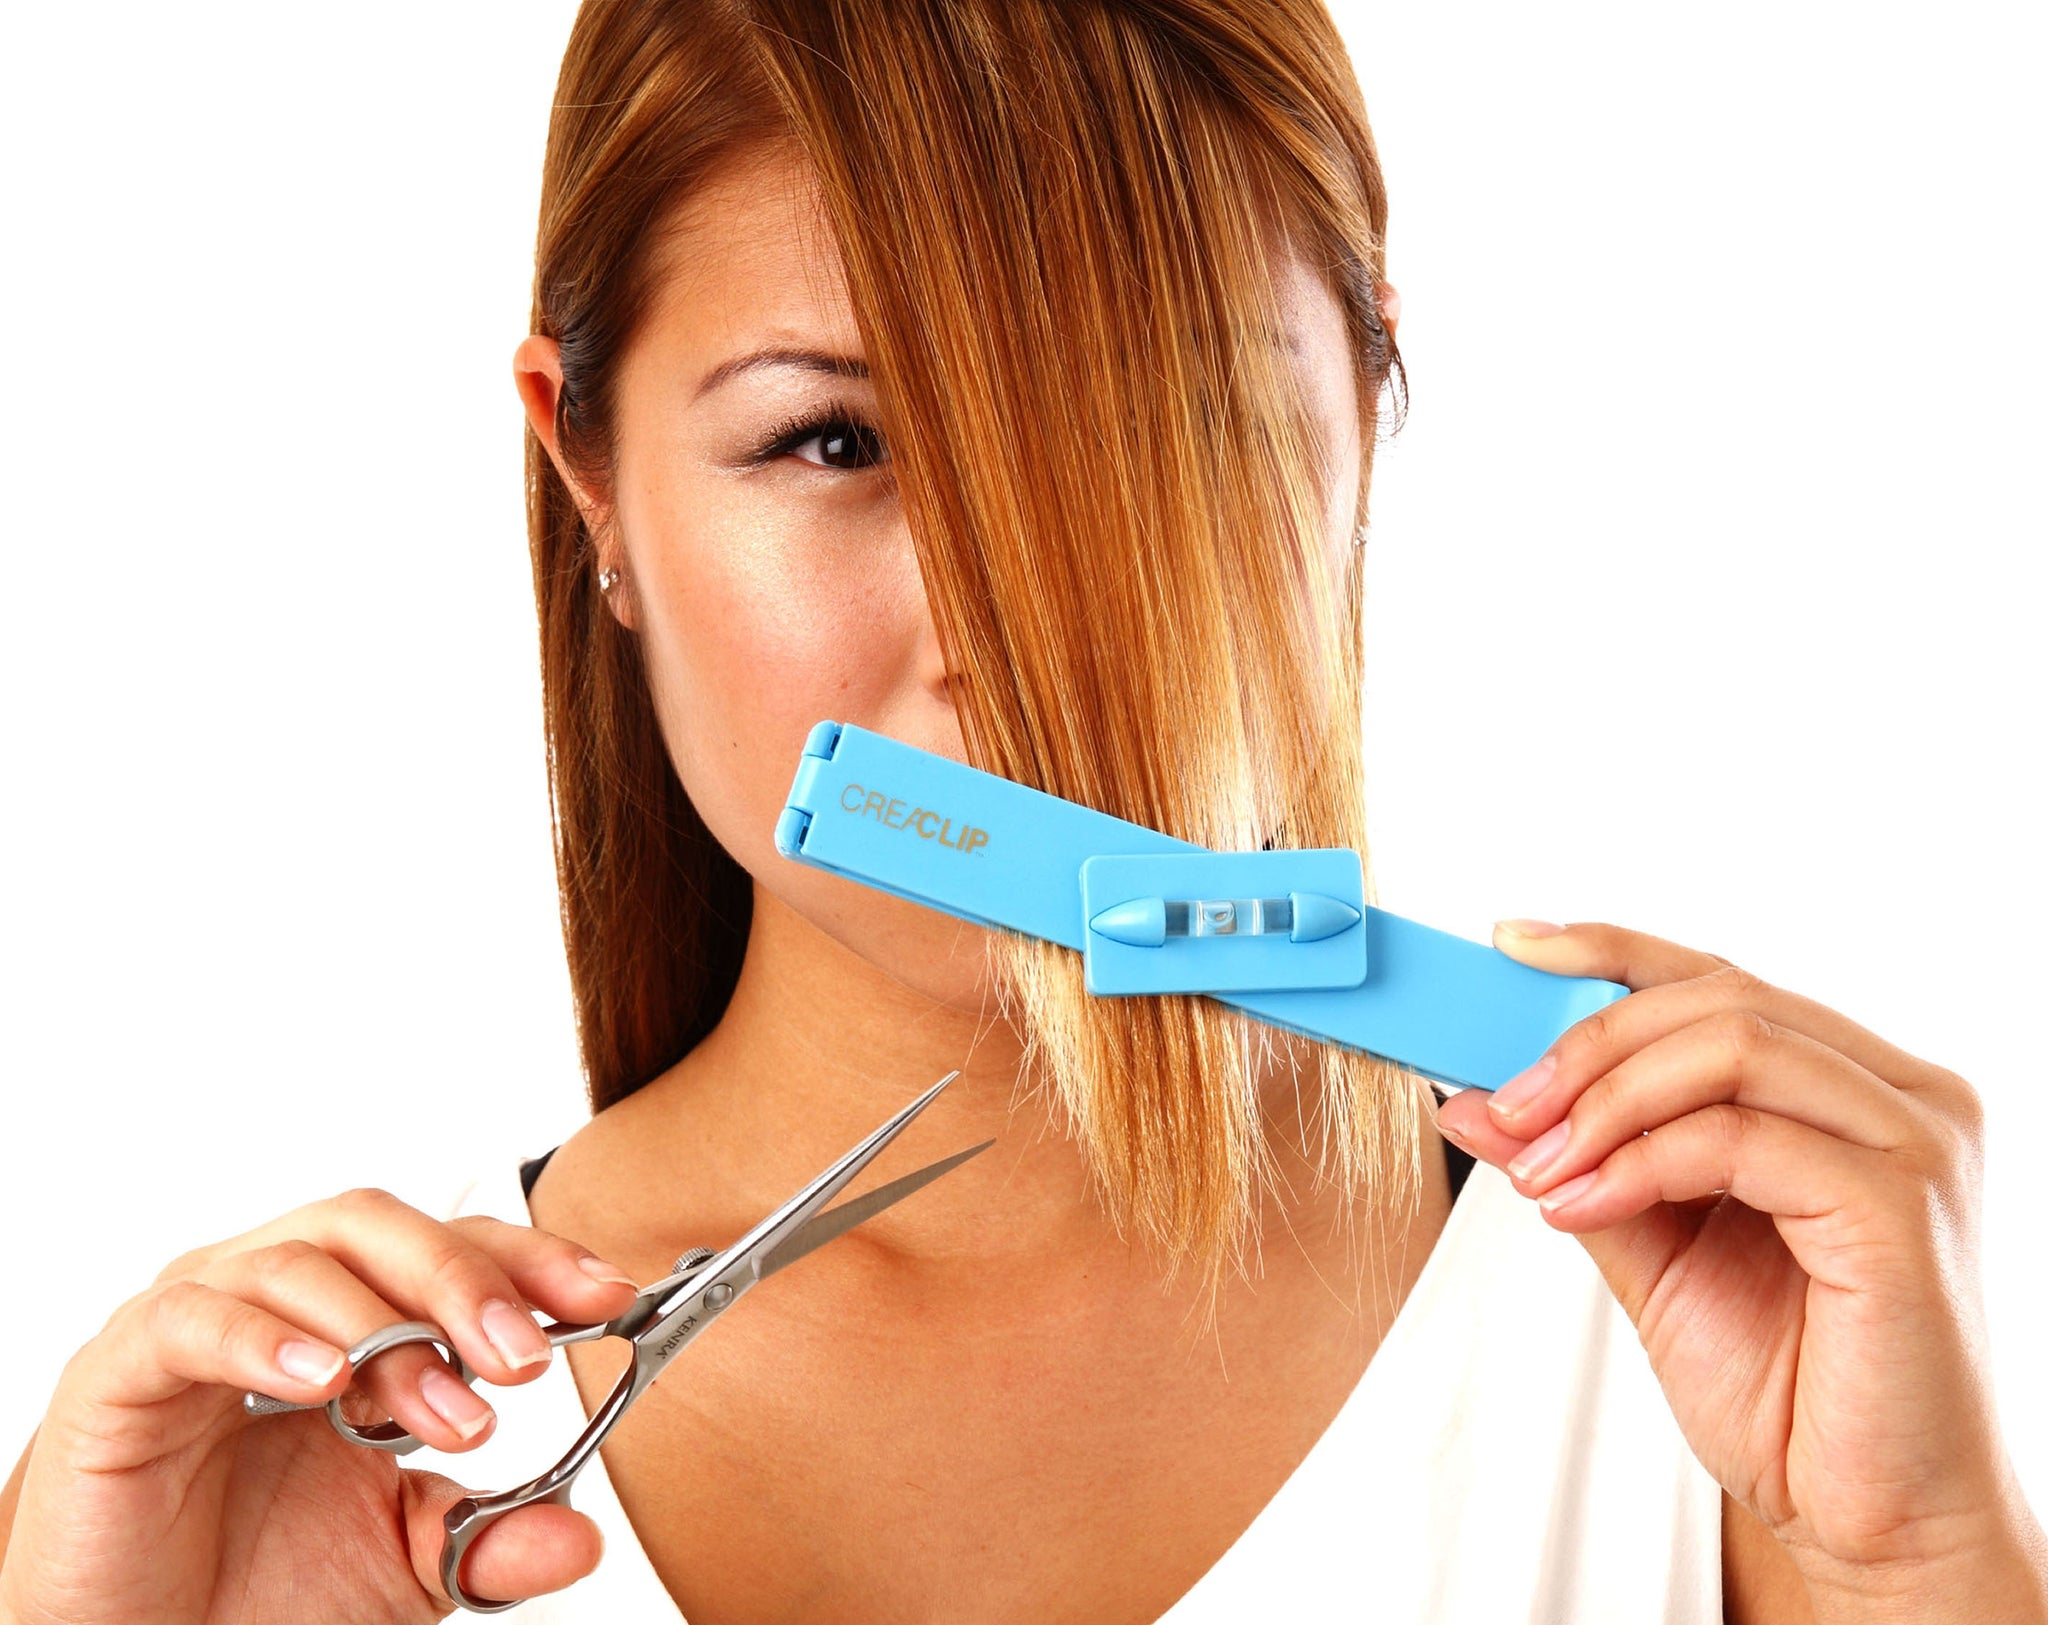 Original CreaClip Set & Scissors - CreaProducts Inc.